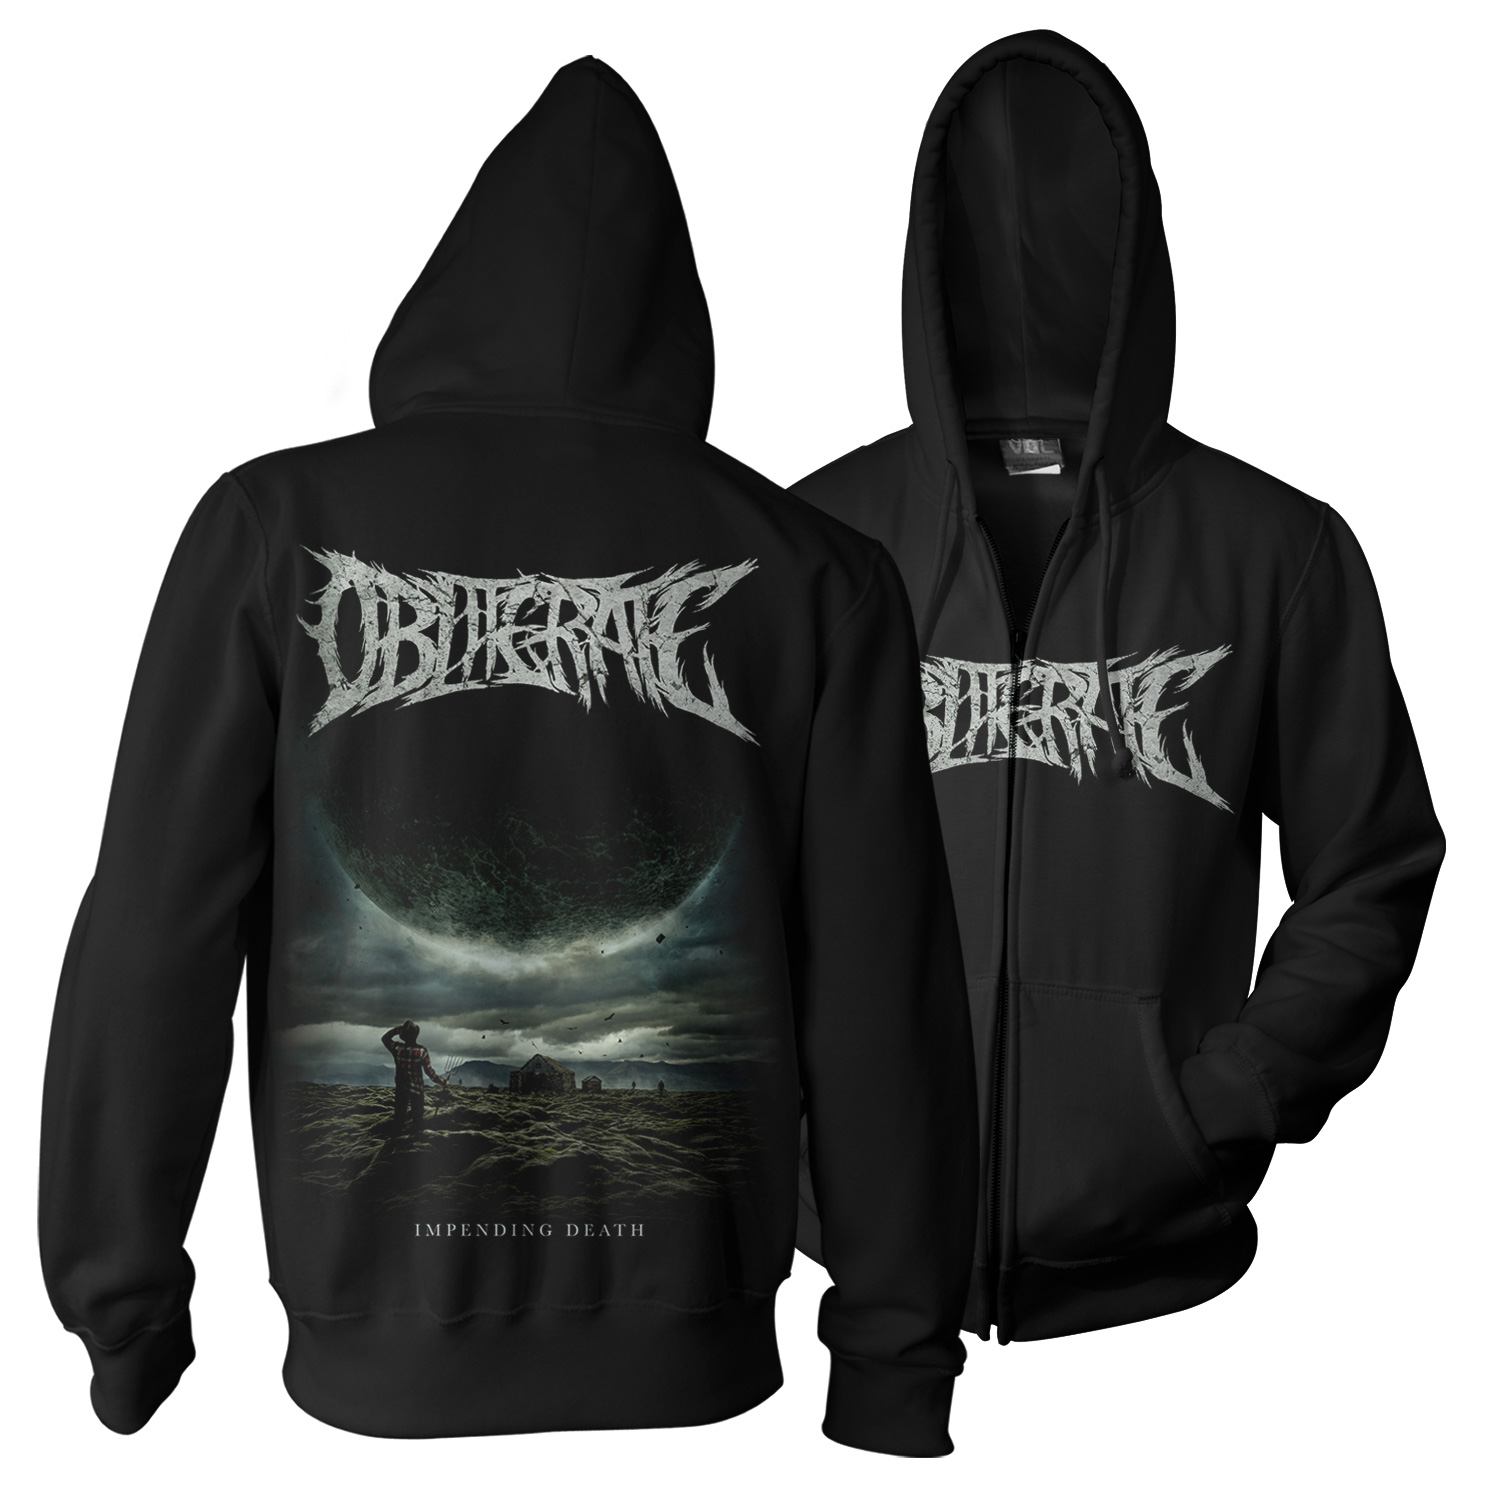 Impending Death Hoody + CD Bundle